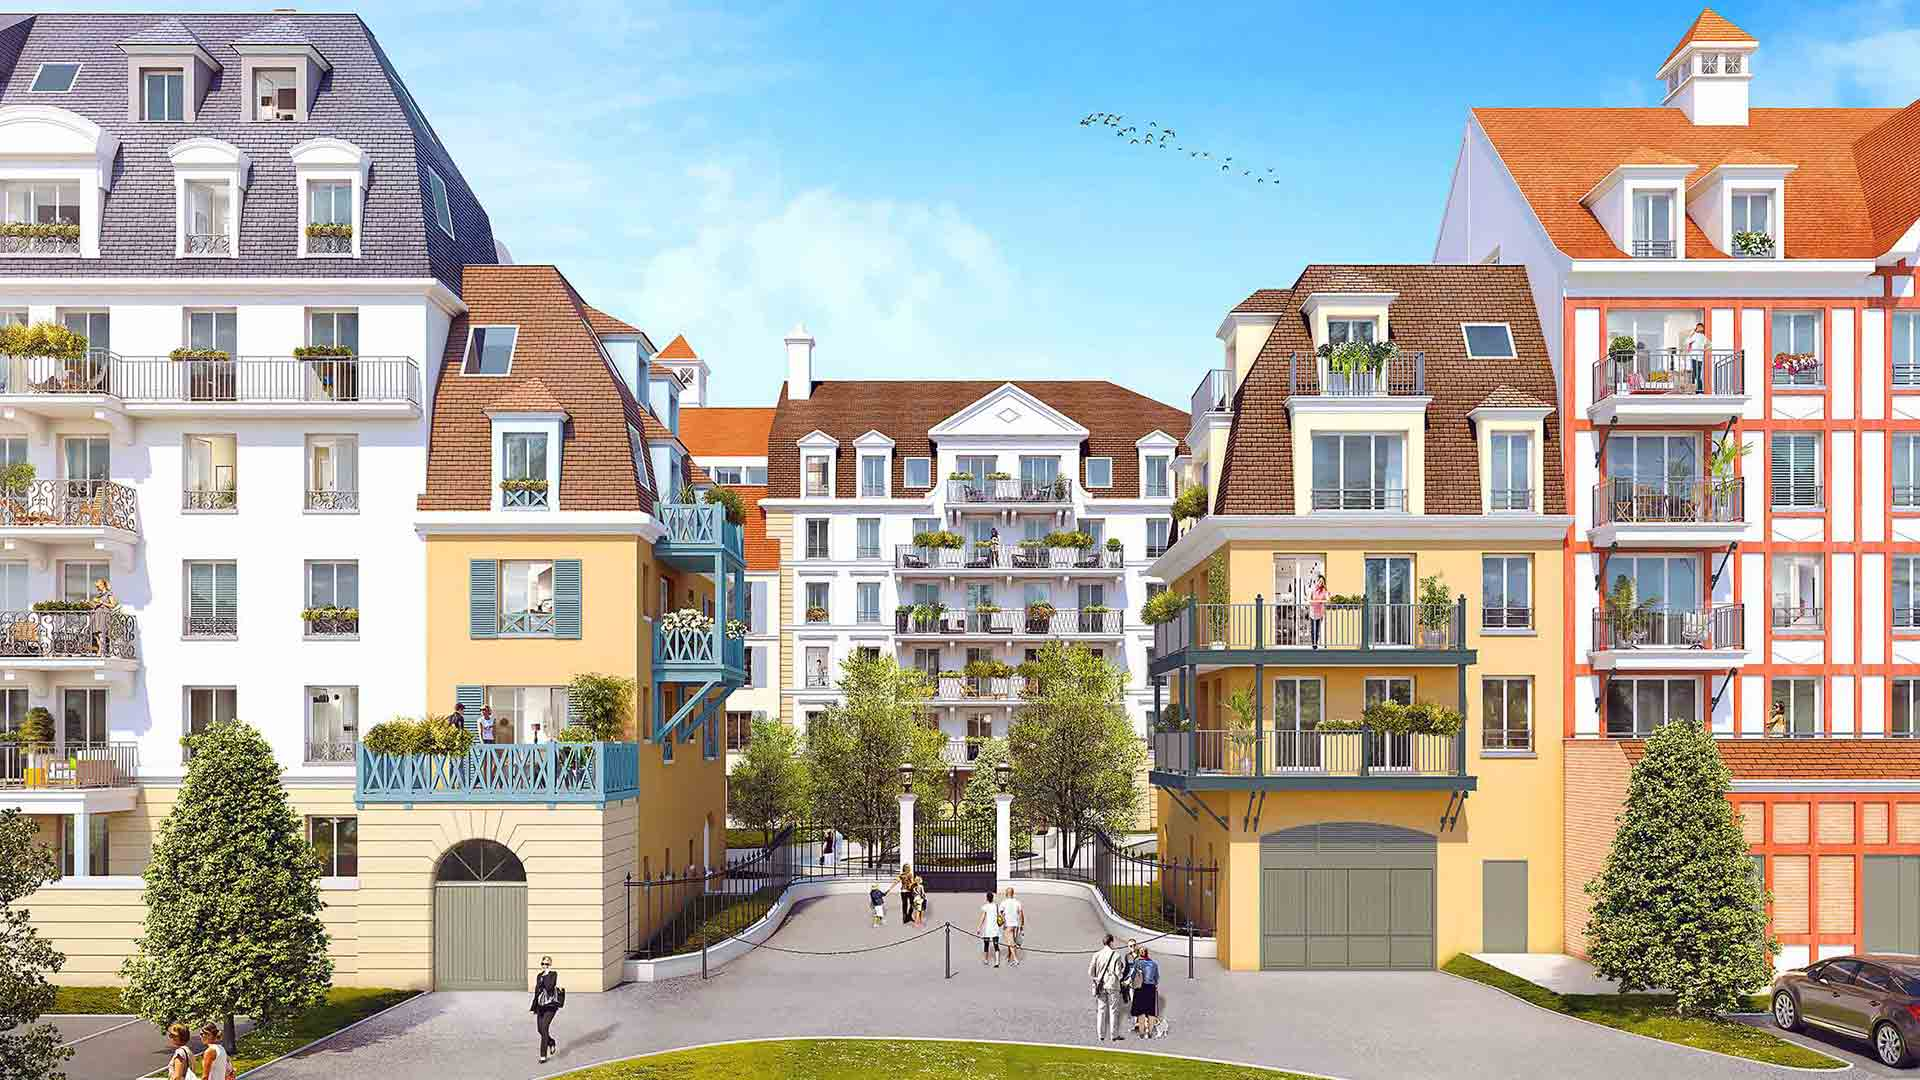 Le domaine des armoiries programme immobilier neuf le for Aide achat immobilier neuf